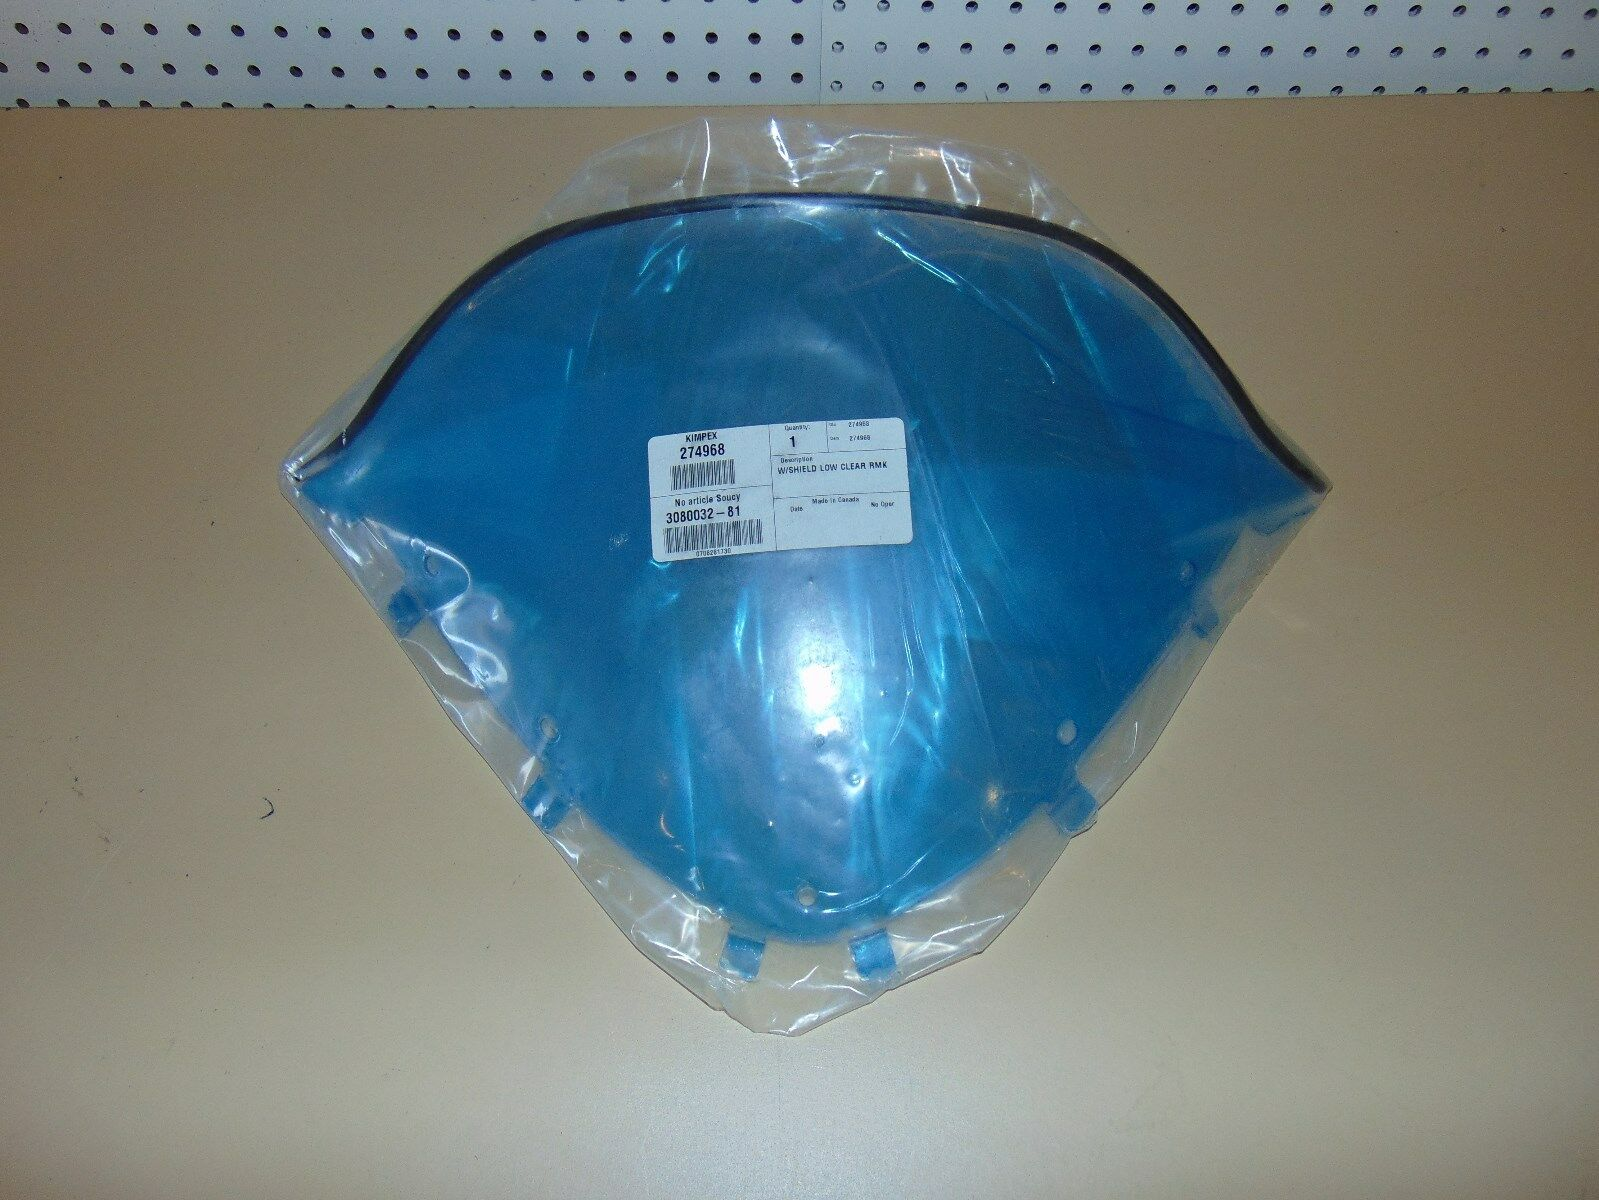 Kimpex 274968 Snowmobile Windshield Low Clear 2006 Polaris RMK 06